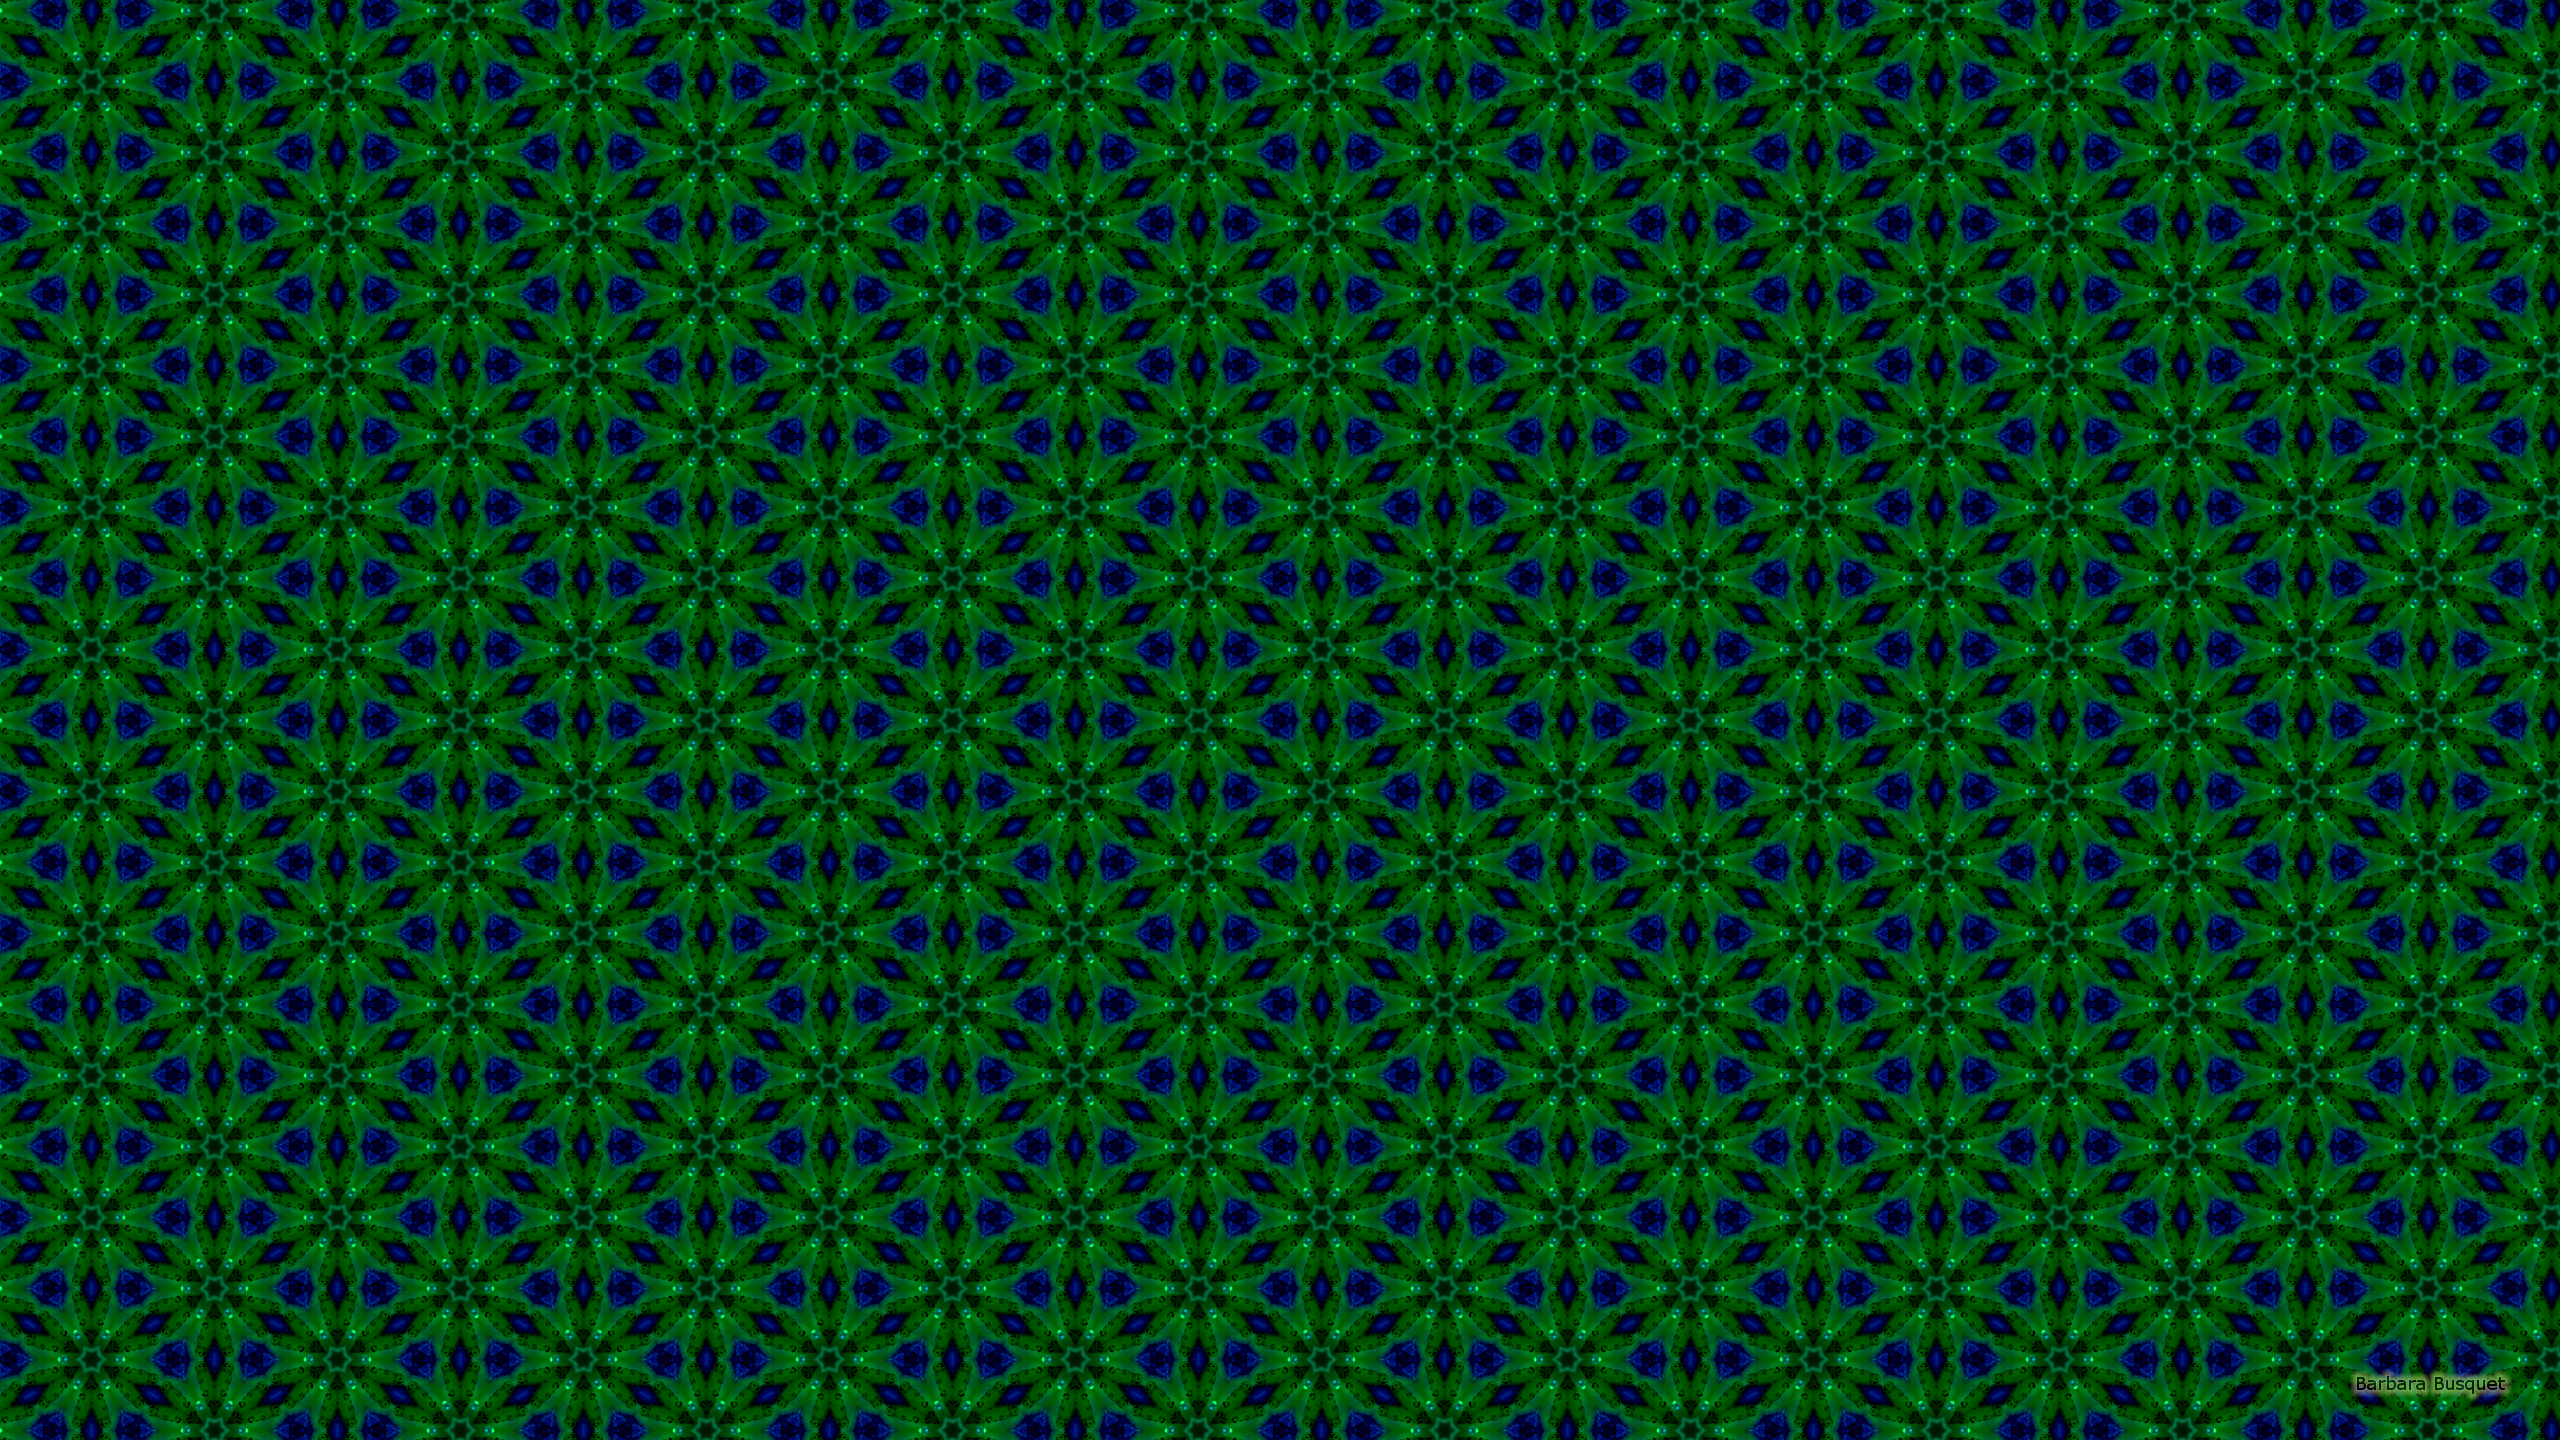 Computer Wallpaper Fall Leaves Blue With Green Patterns Barbaras Hd Wallpapers